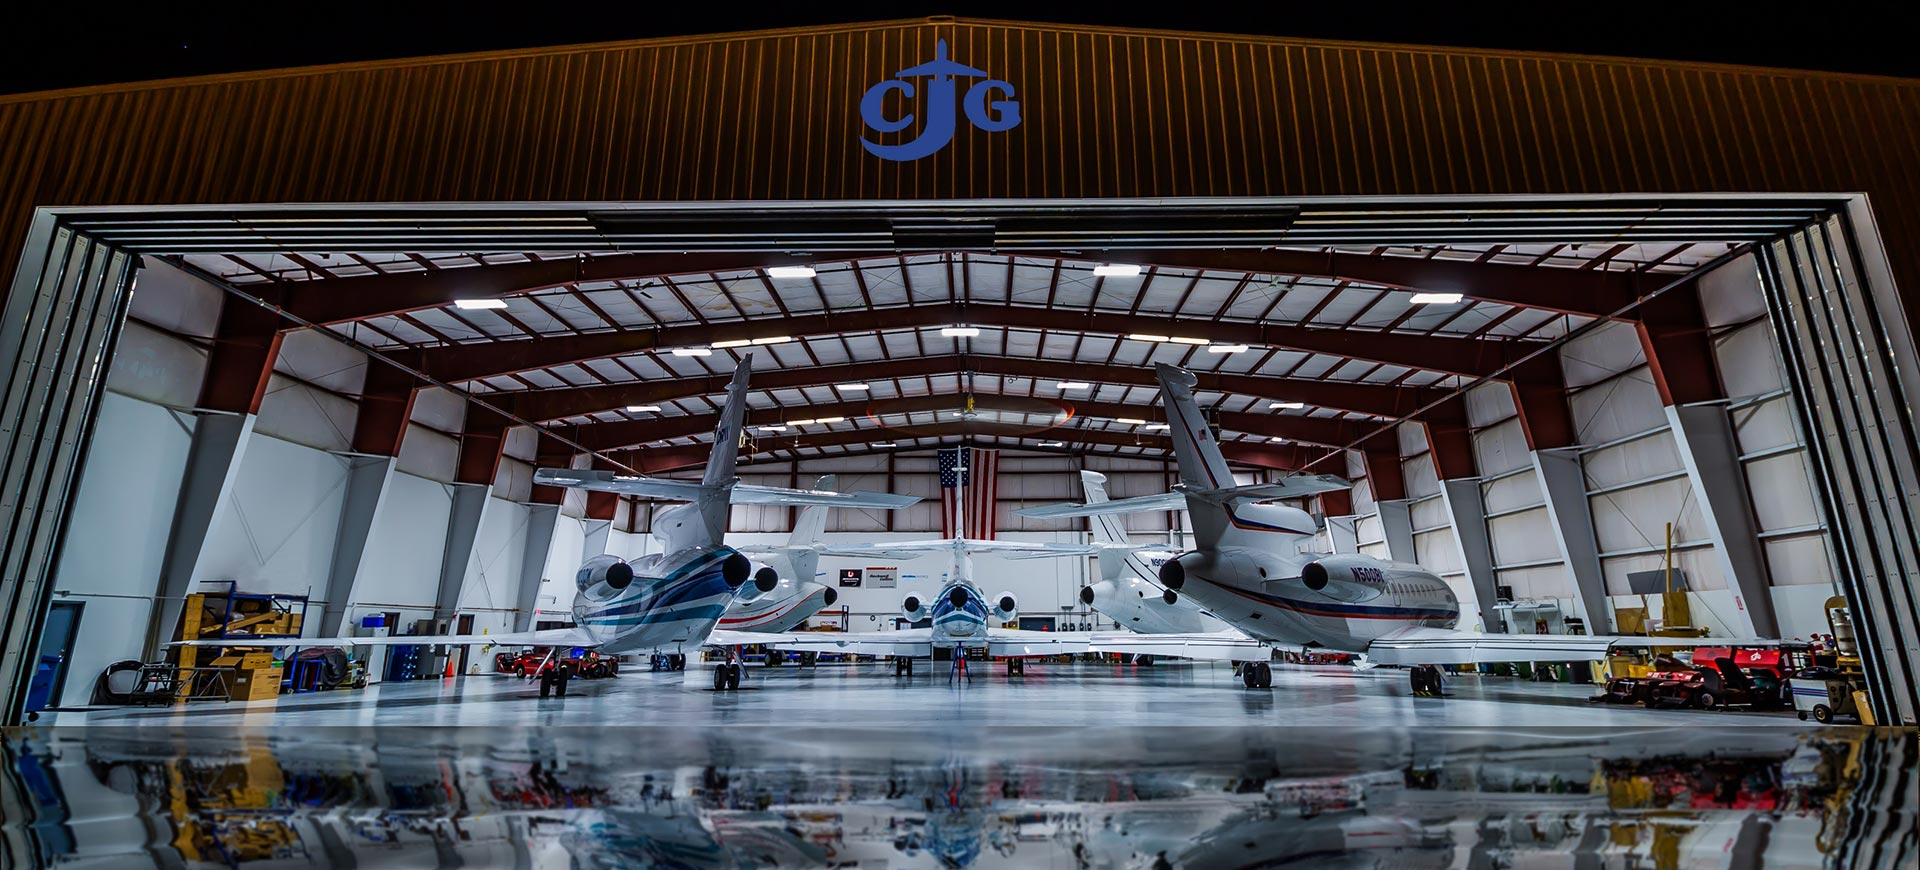 Chicago Jet Group Hangar